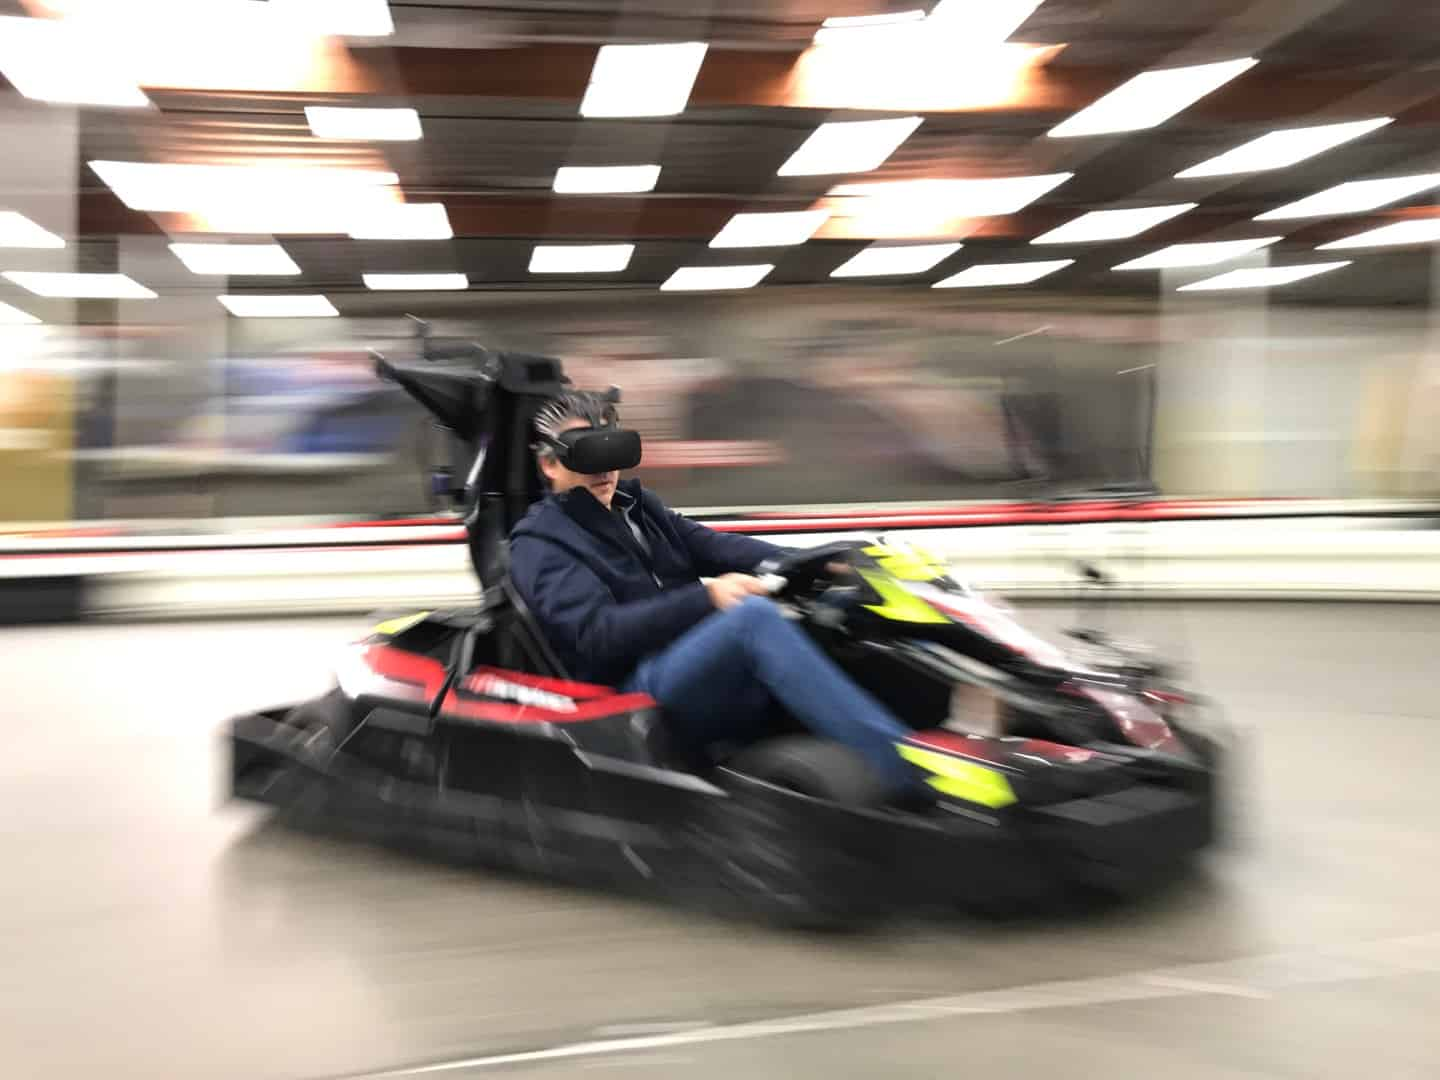 man races kart with vr equipment